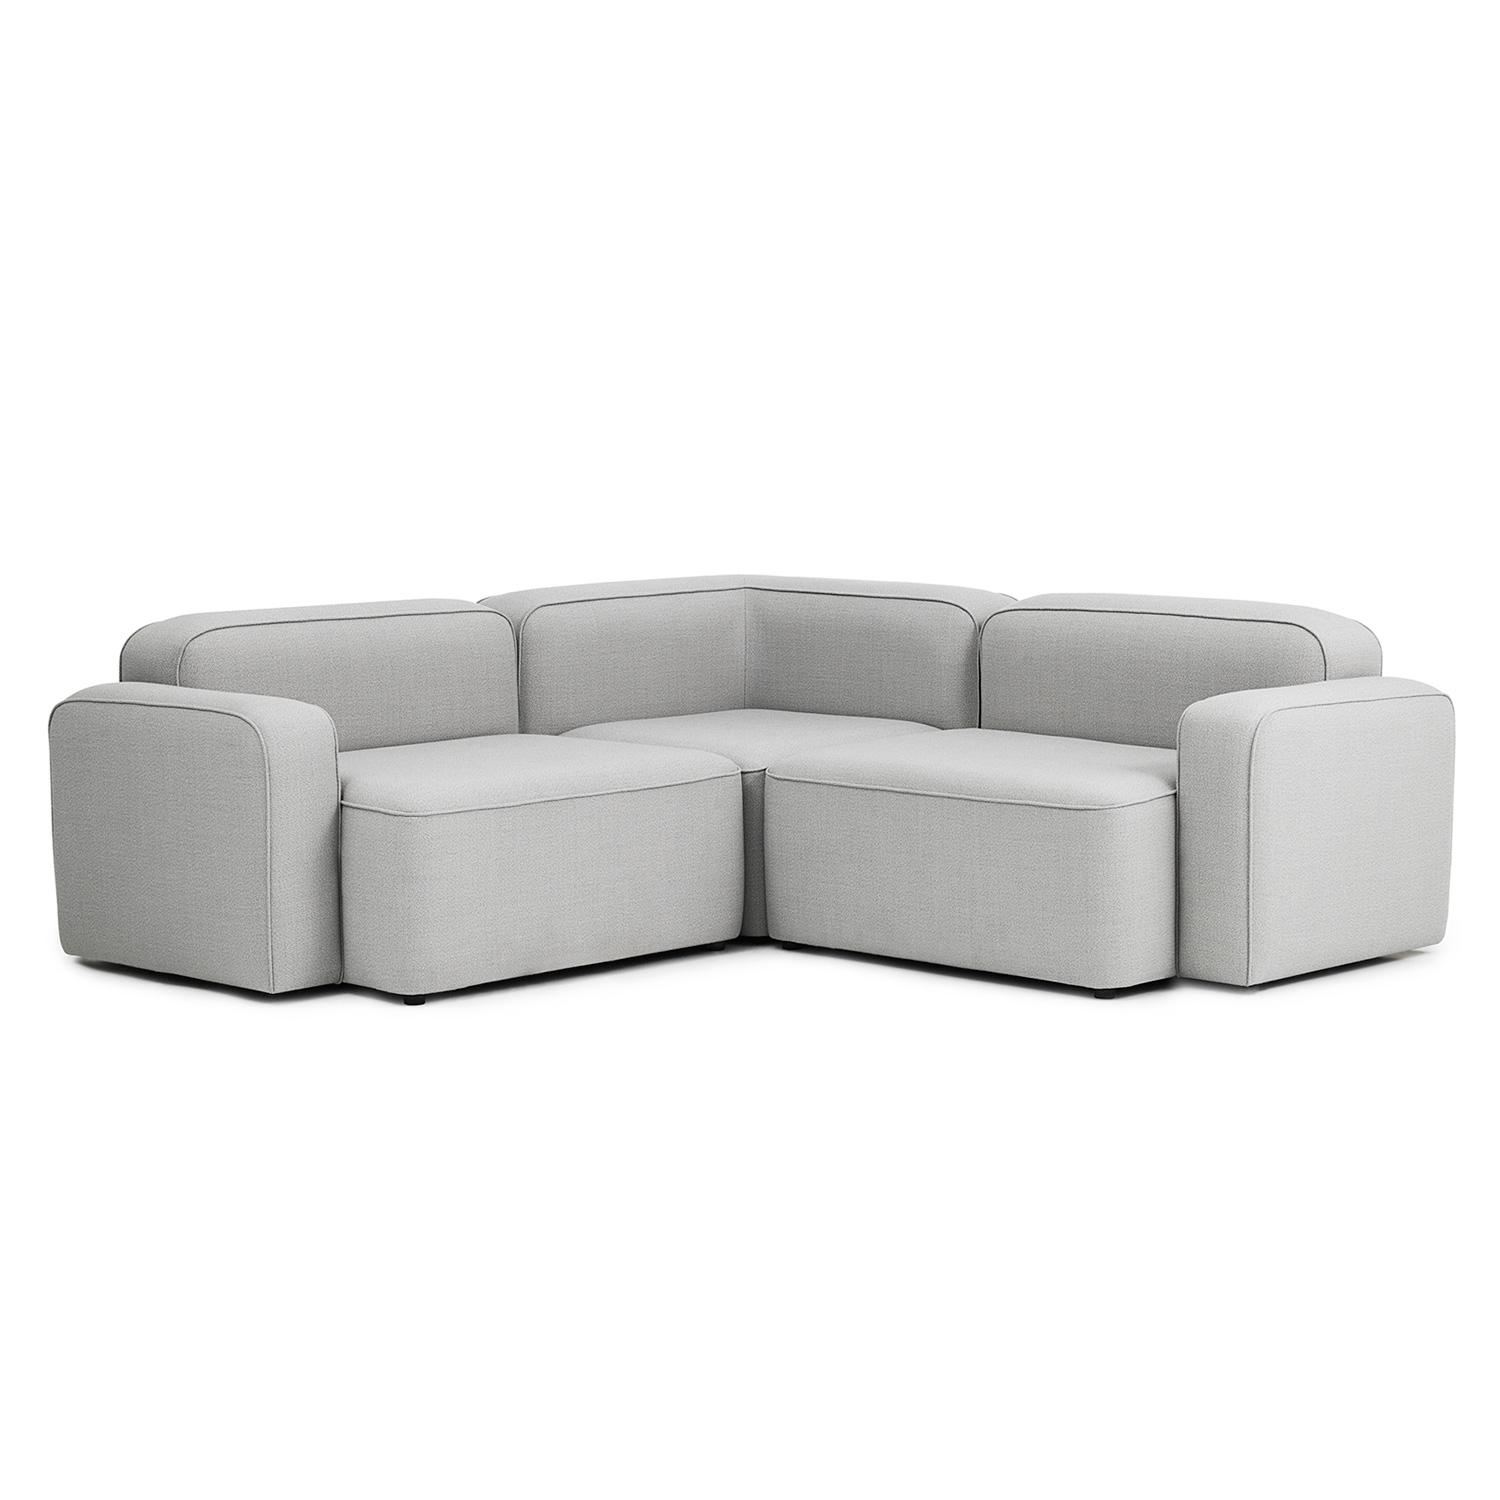 Rope 2 Seater Corner Sofa